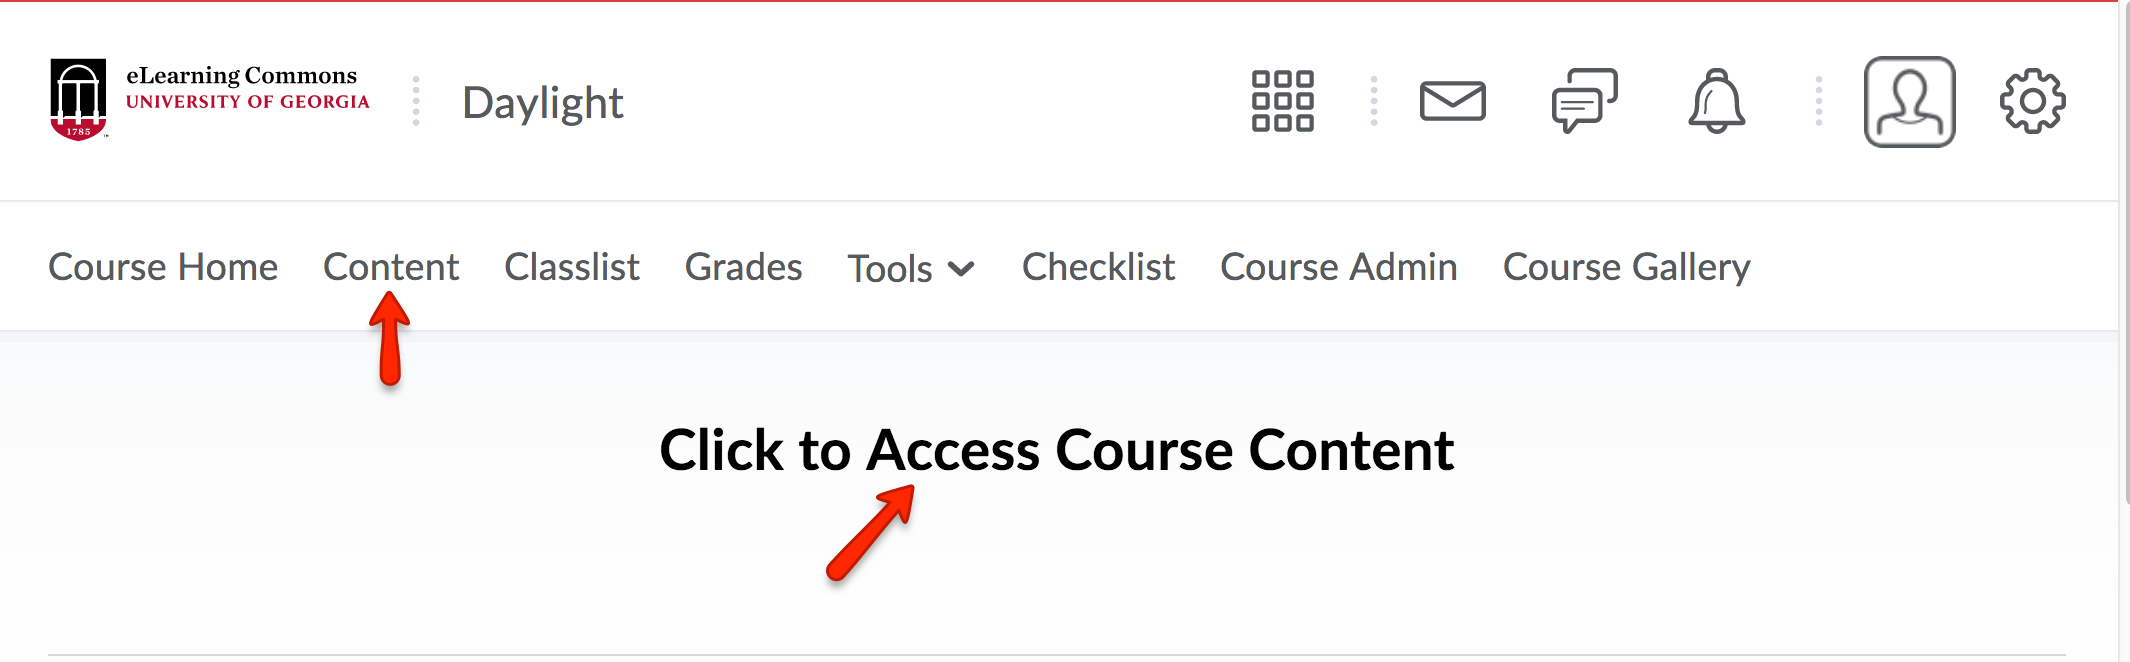 Click Content from the course navbar or click Click Here to Access Course Content.